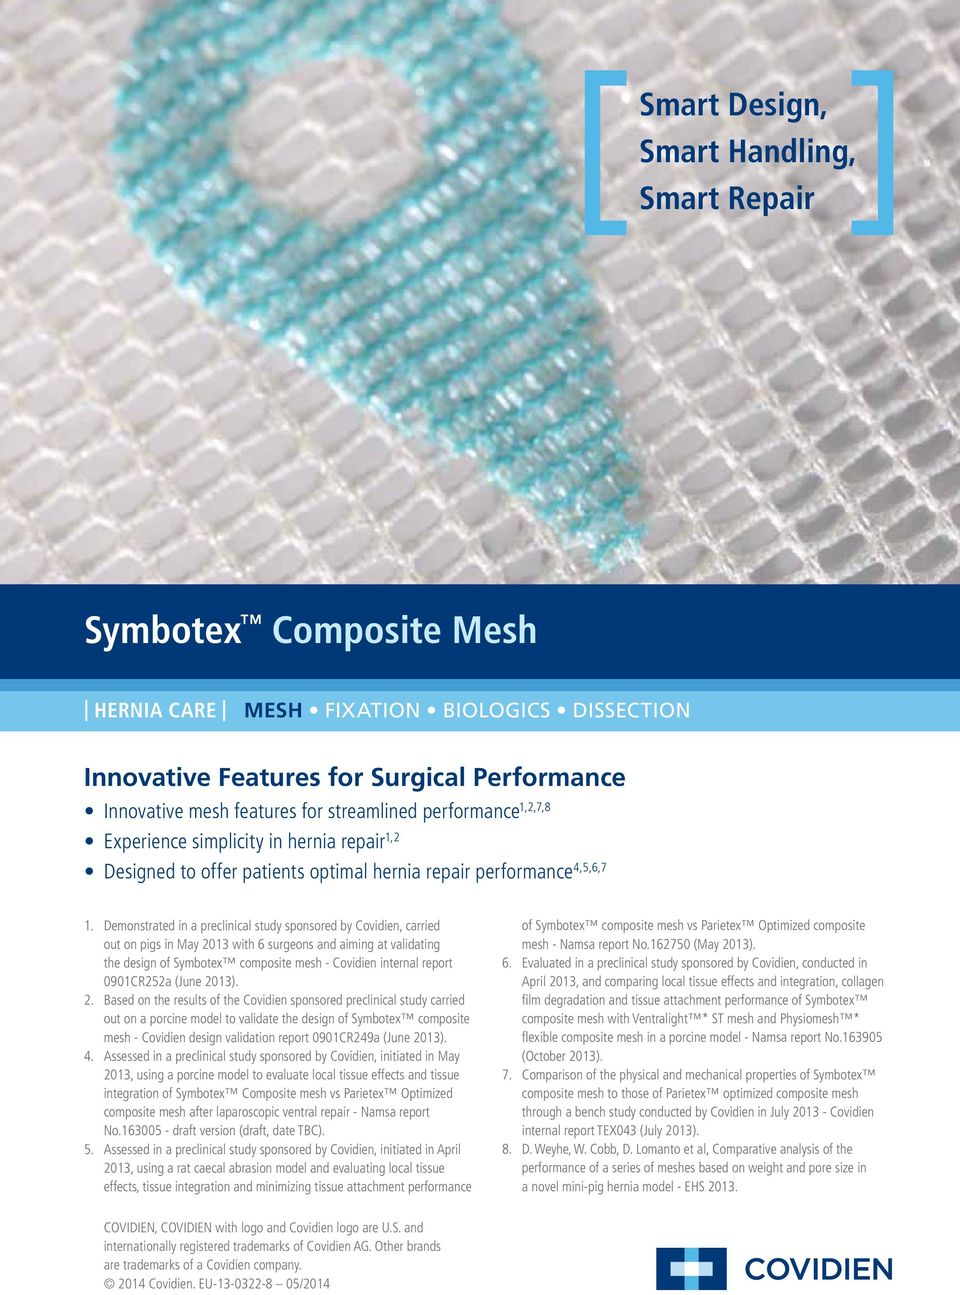 Demonstrated in a preclinical study sponsored by Covidien, carried out on pigs in May 2013 with 6 surgeons and aiming at validating the design of Symbotex composite mesh - Covidien internal report